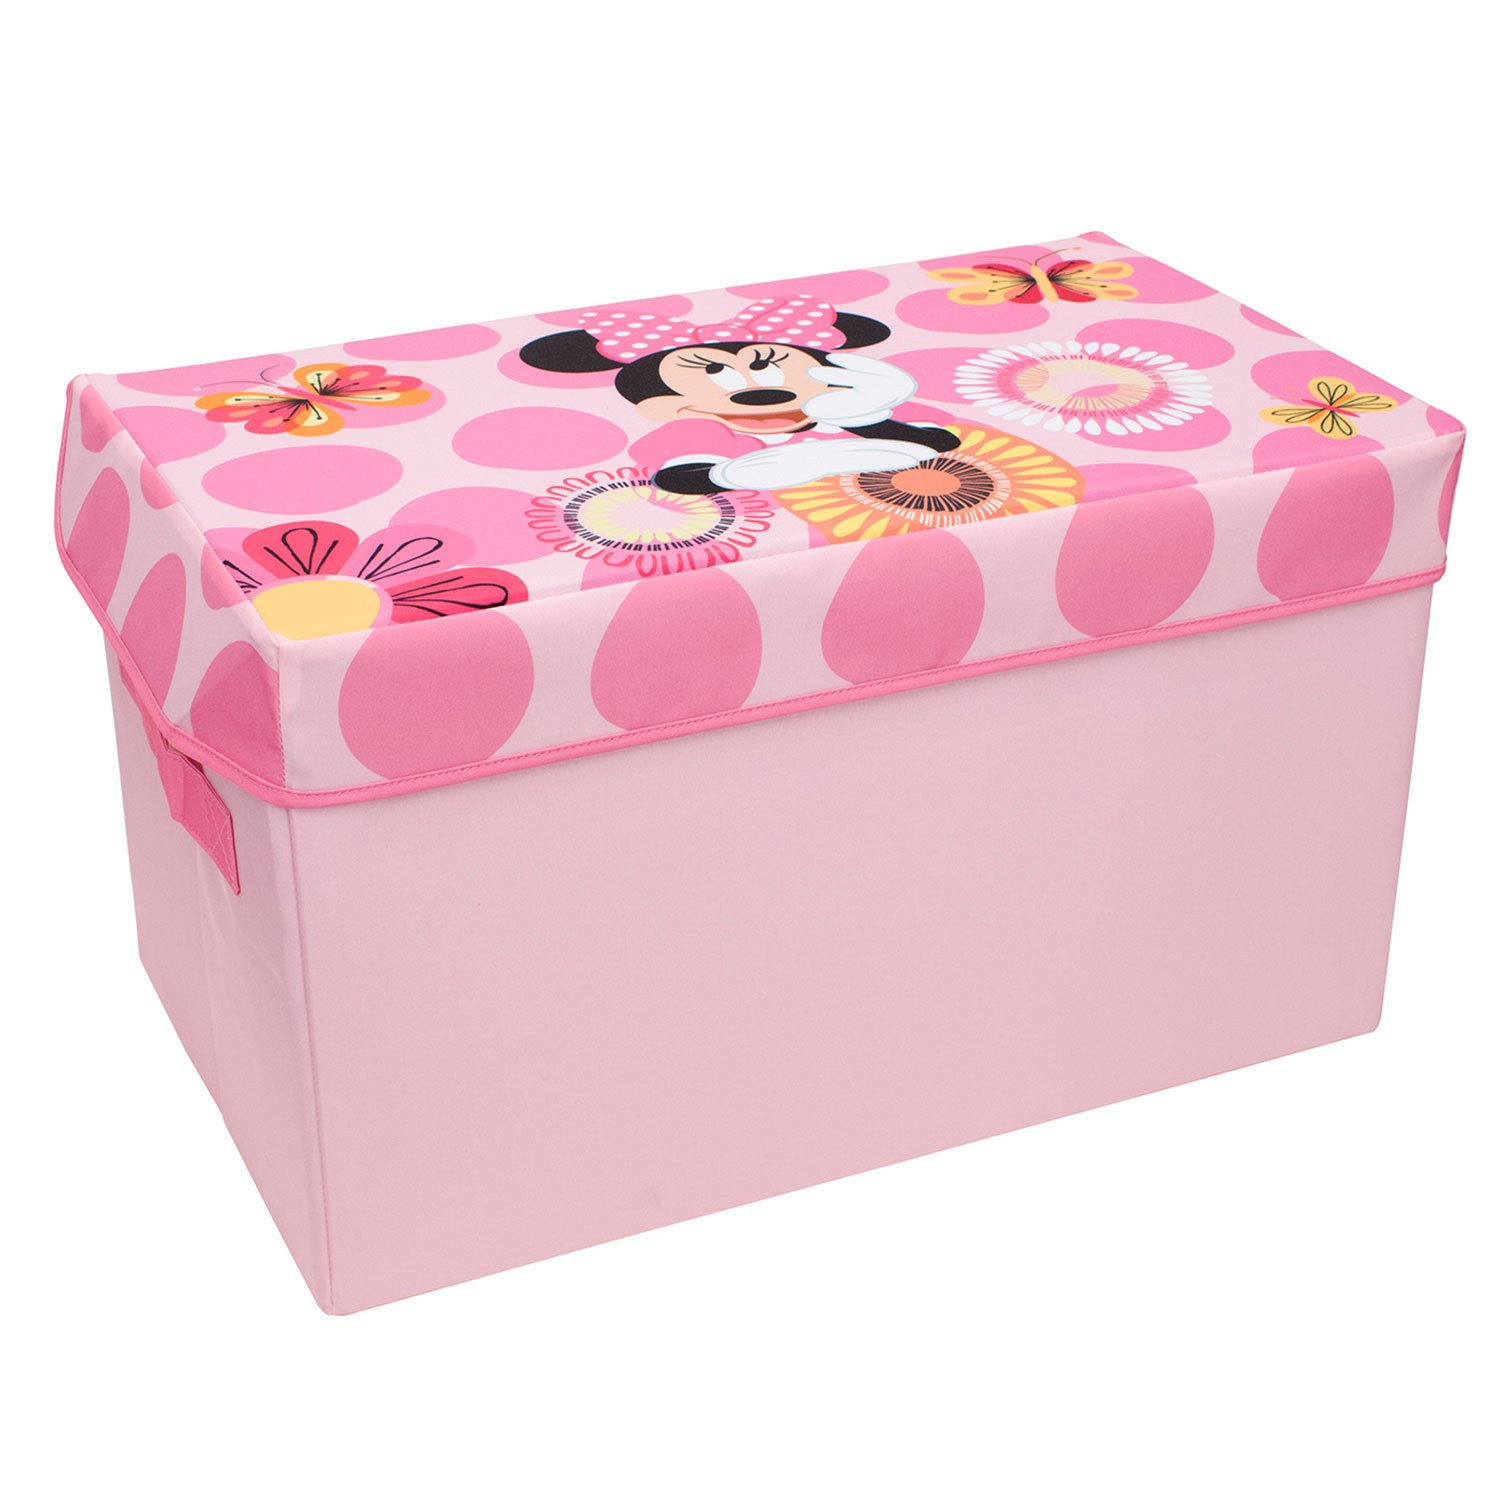 Minnie Mouse Collapsible KidsToy Storage Chest by Disney - Flip-Top Toy Organizer Bin for Closets, Kids Bedroom, Boys & Girls Toys - Foldable Toy Basket Organizer with Strong Handles & Design Everything Mary